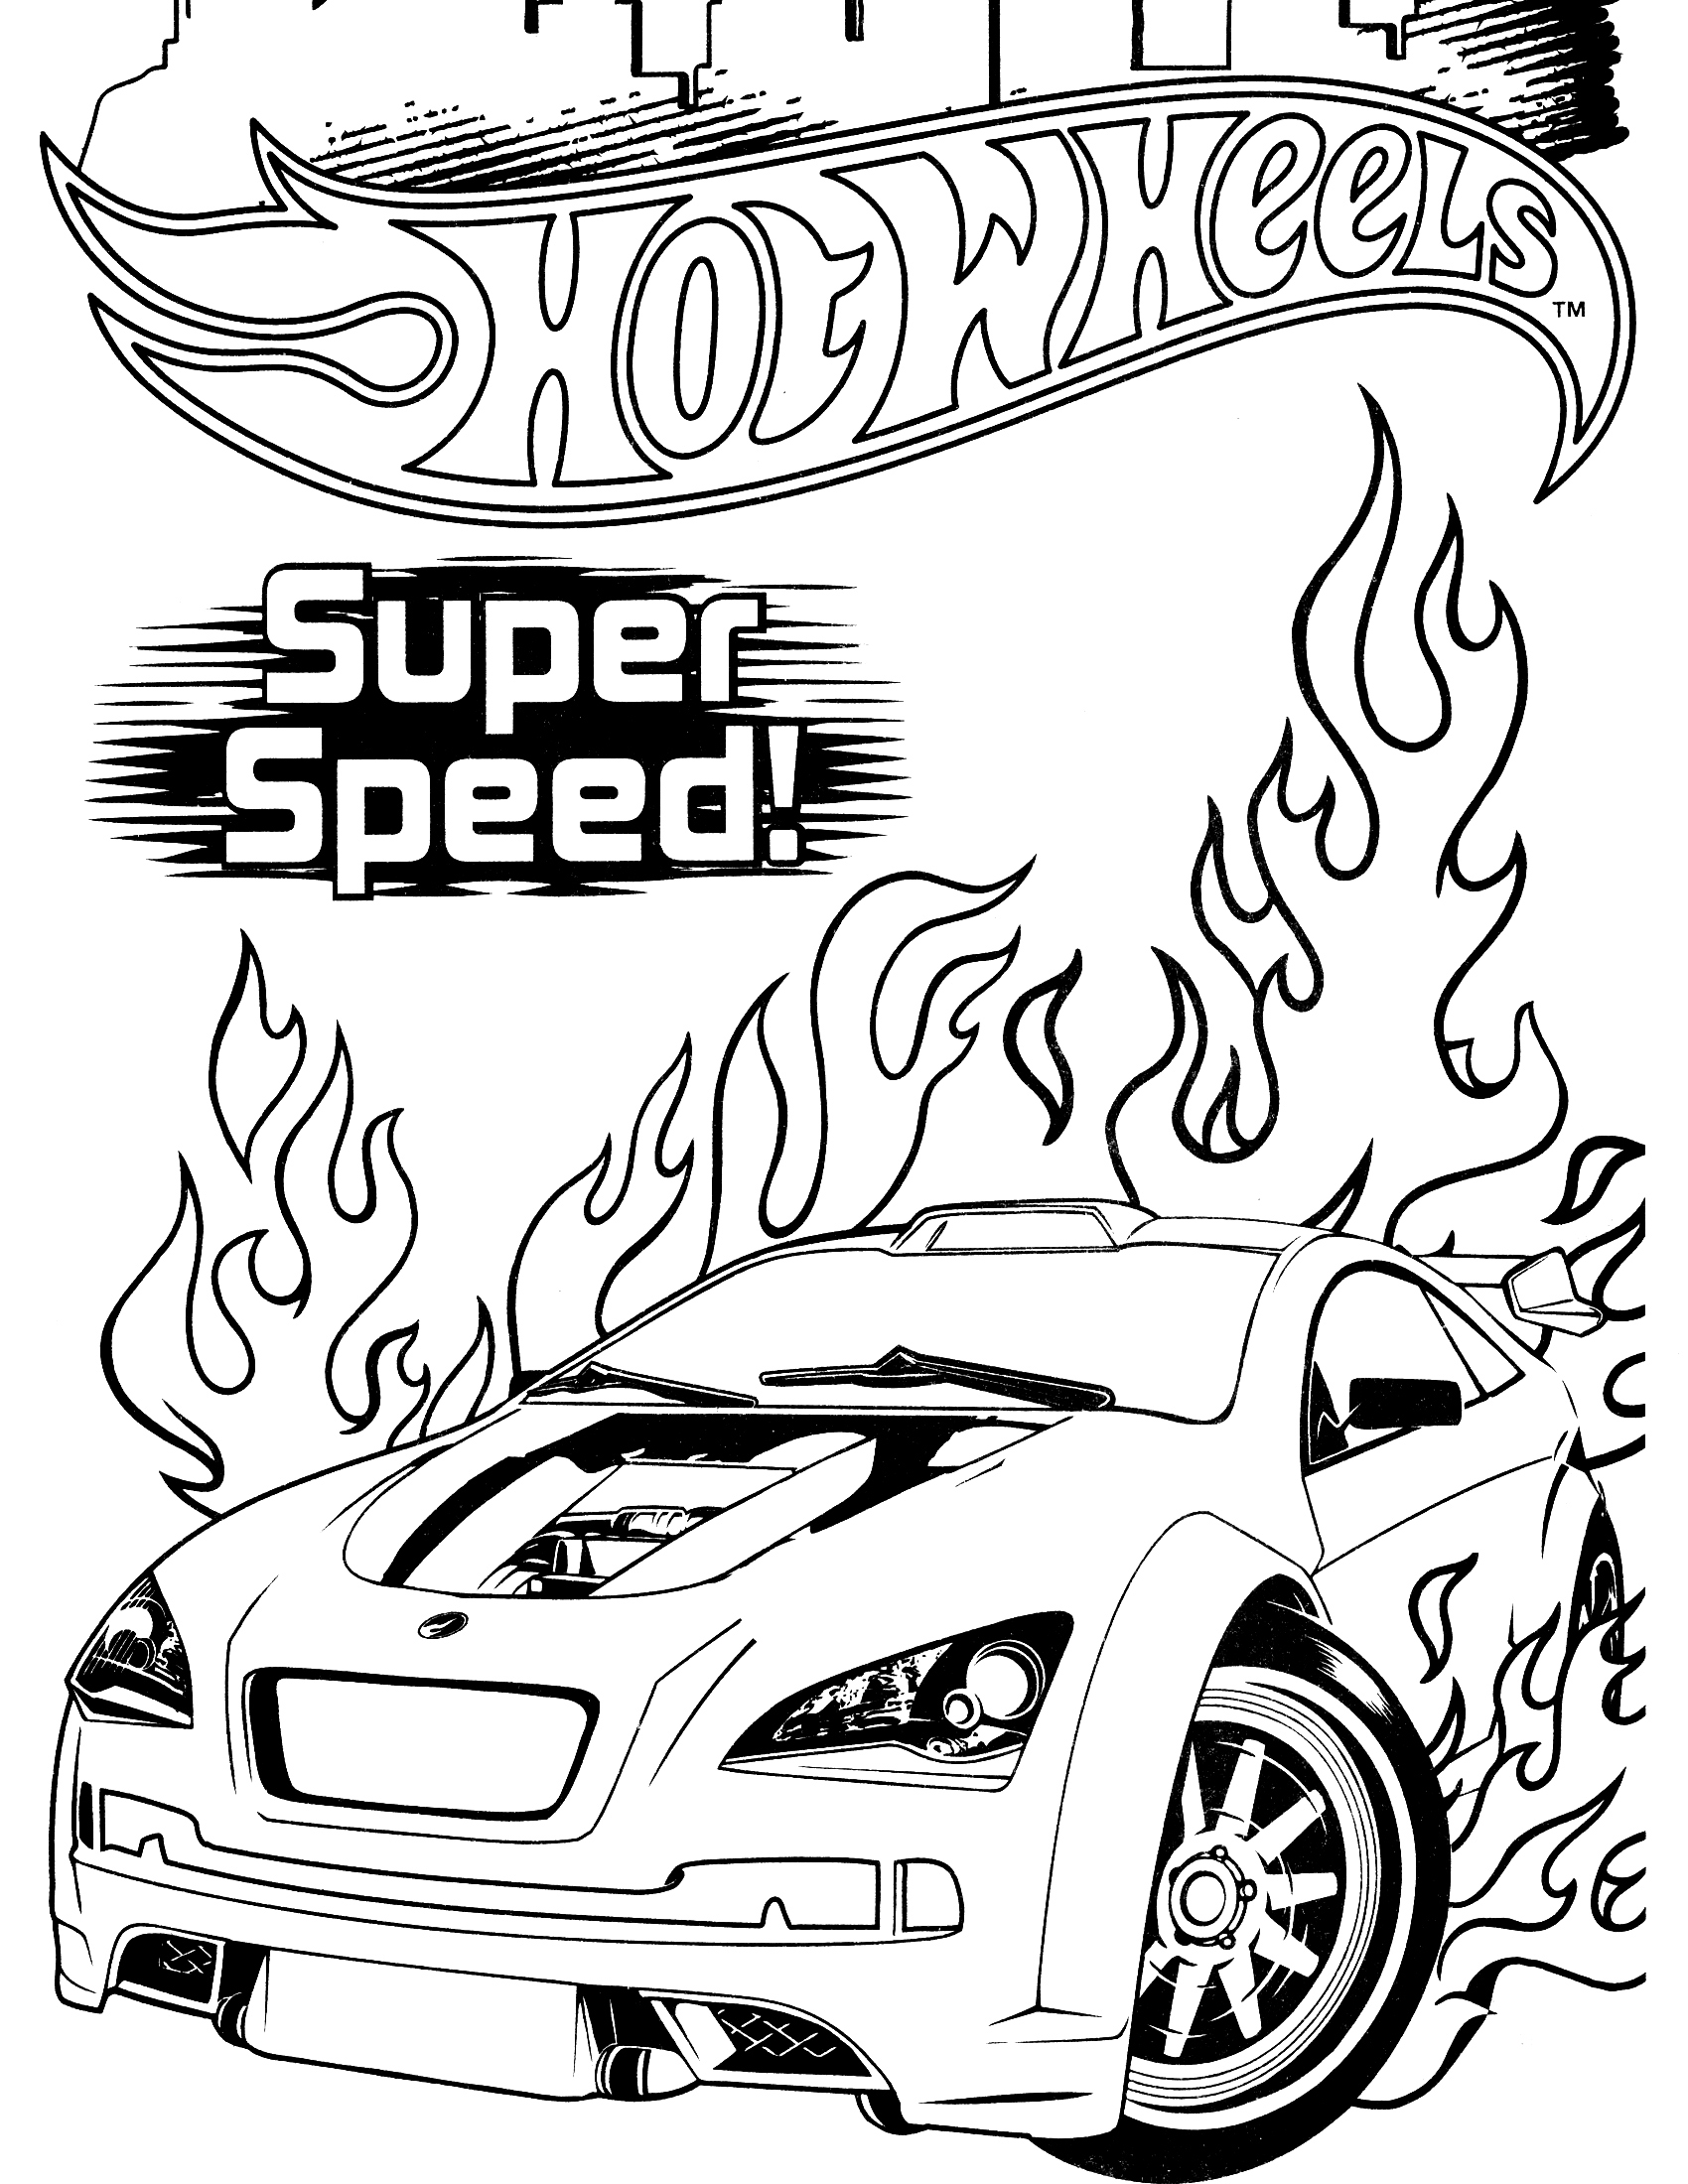 Coloring pages for hot wheels - Hot Wheel Coloring Pages